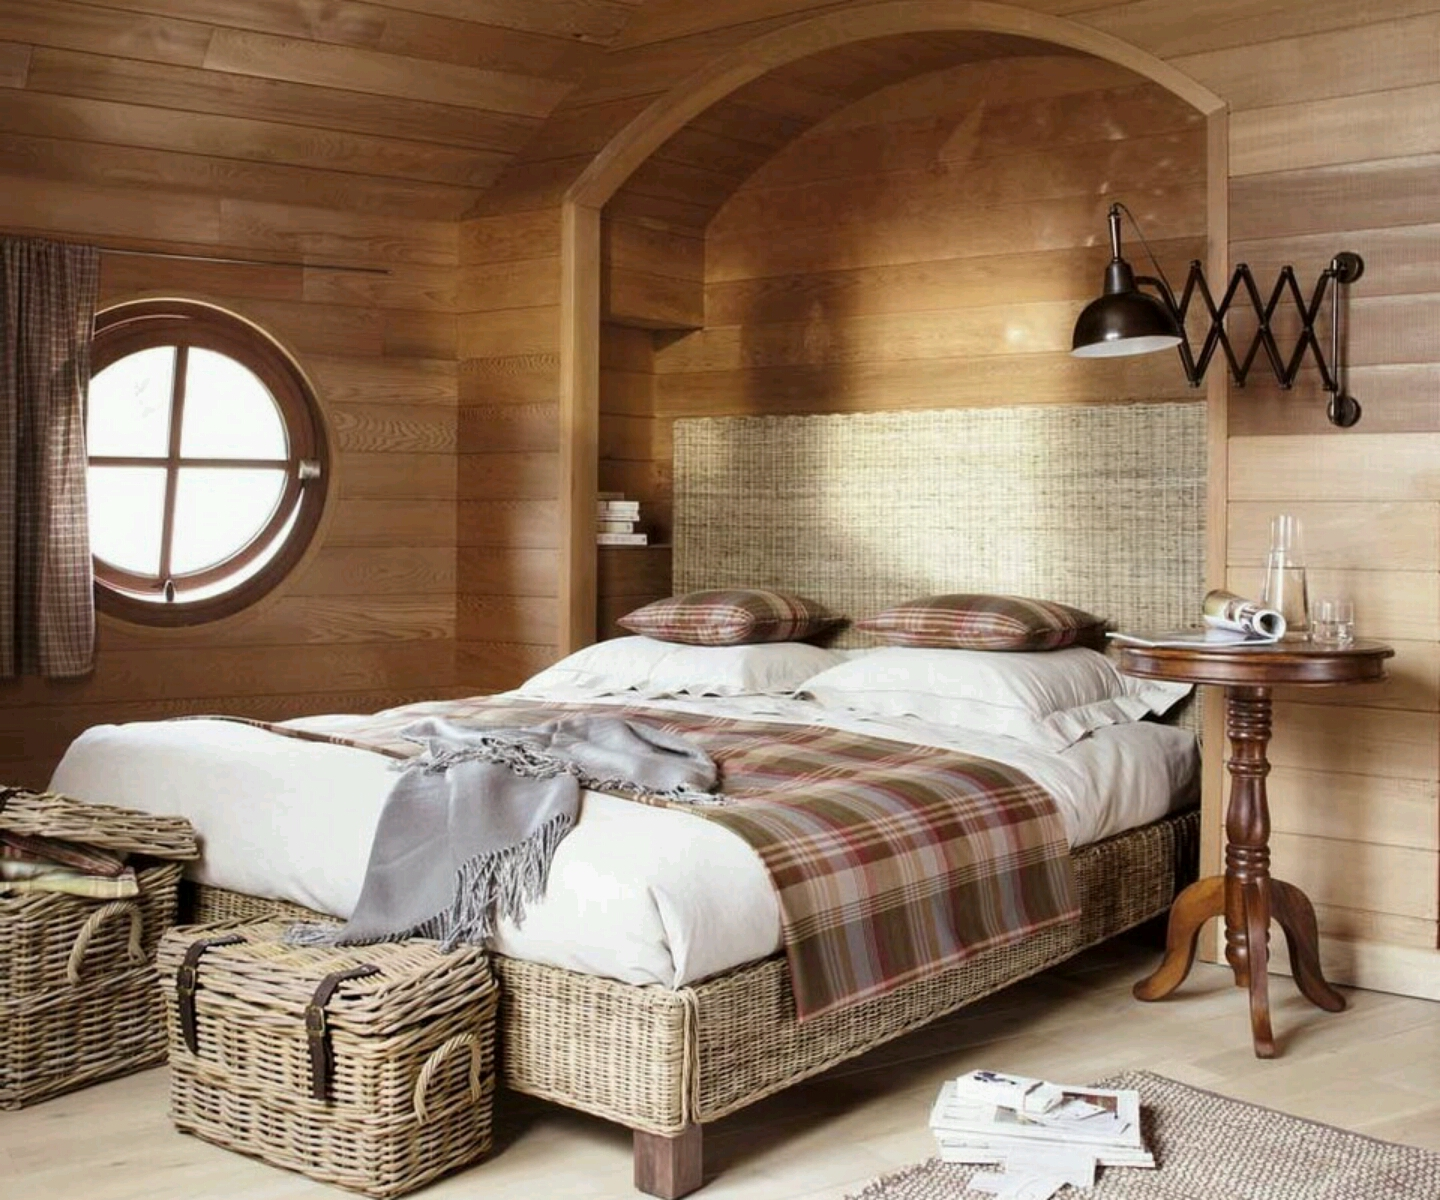 New home designs latest modern beautiful bedrooms for Bedroom designs latest